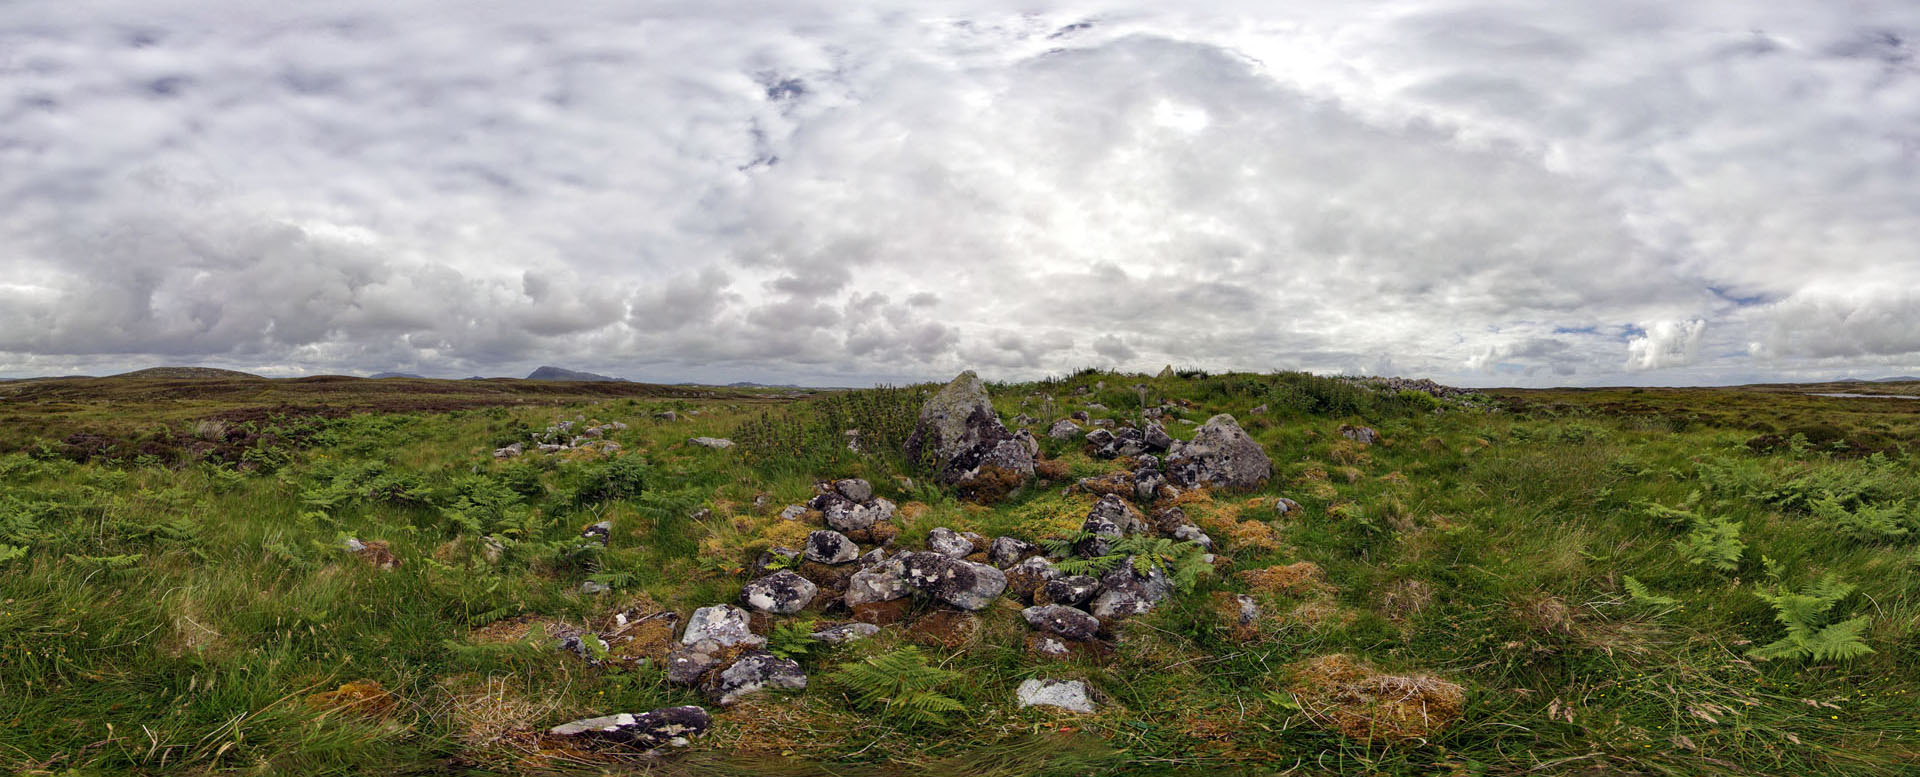 24 Caravat Barp (chambered cairn at Carinish)